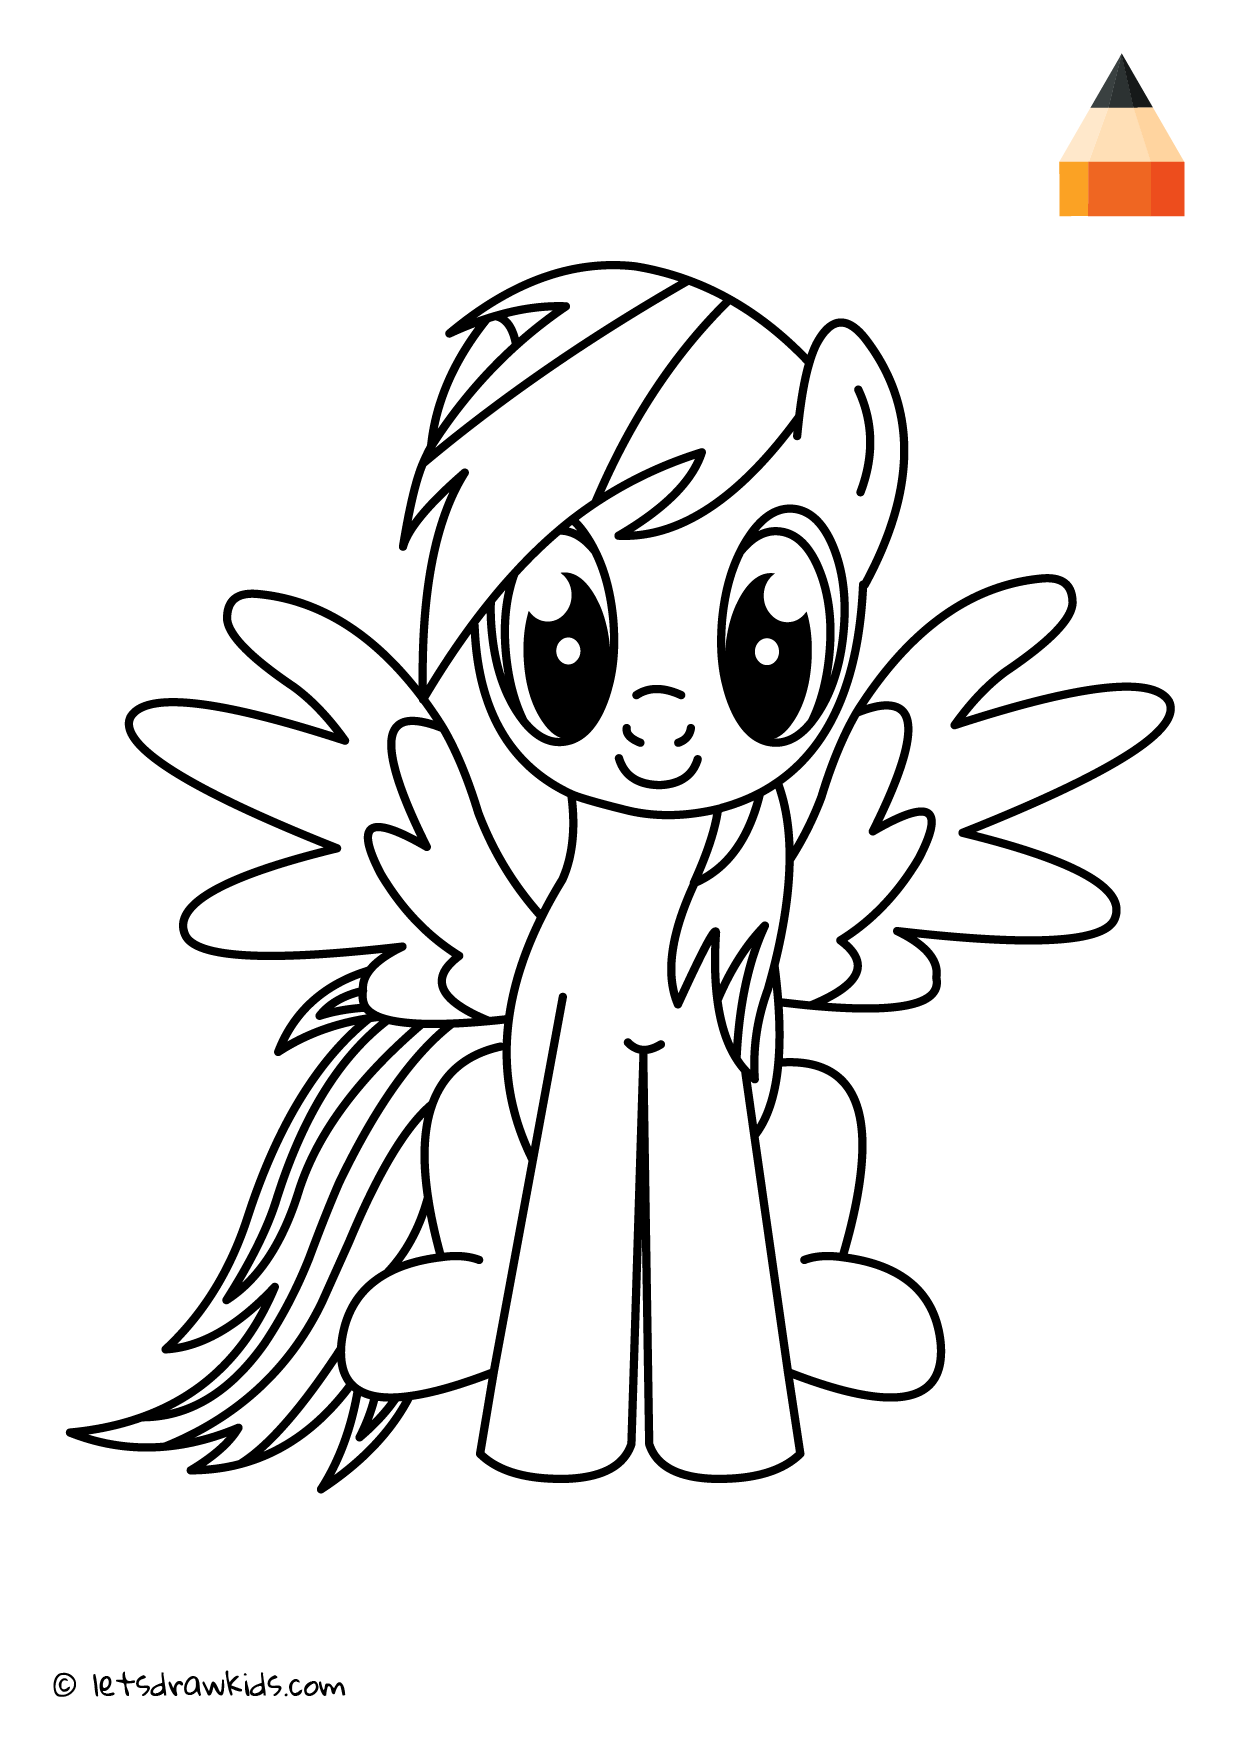 Coloring Page My Little Pony Rainbow Dash Rainbow Dash Drawings Coloring Pages